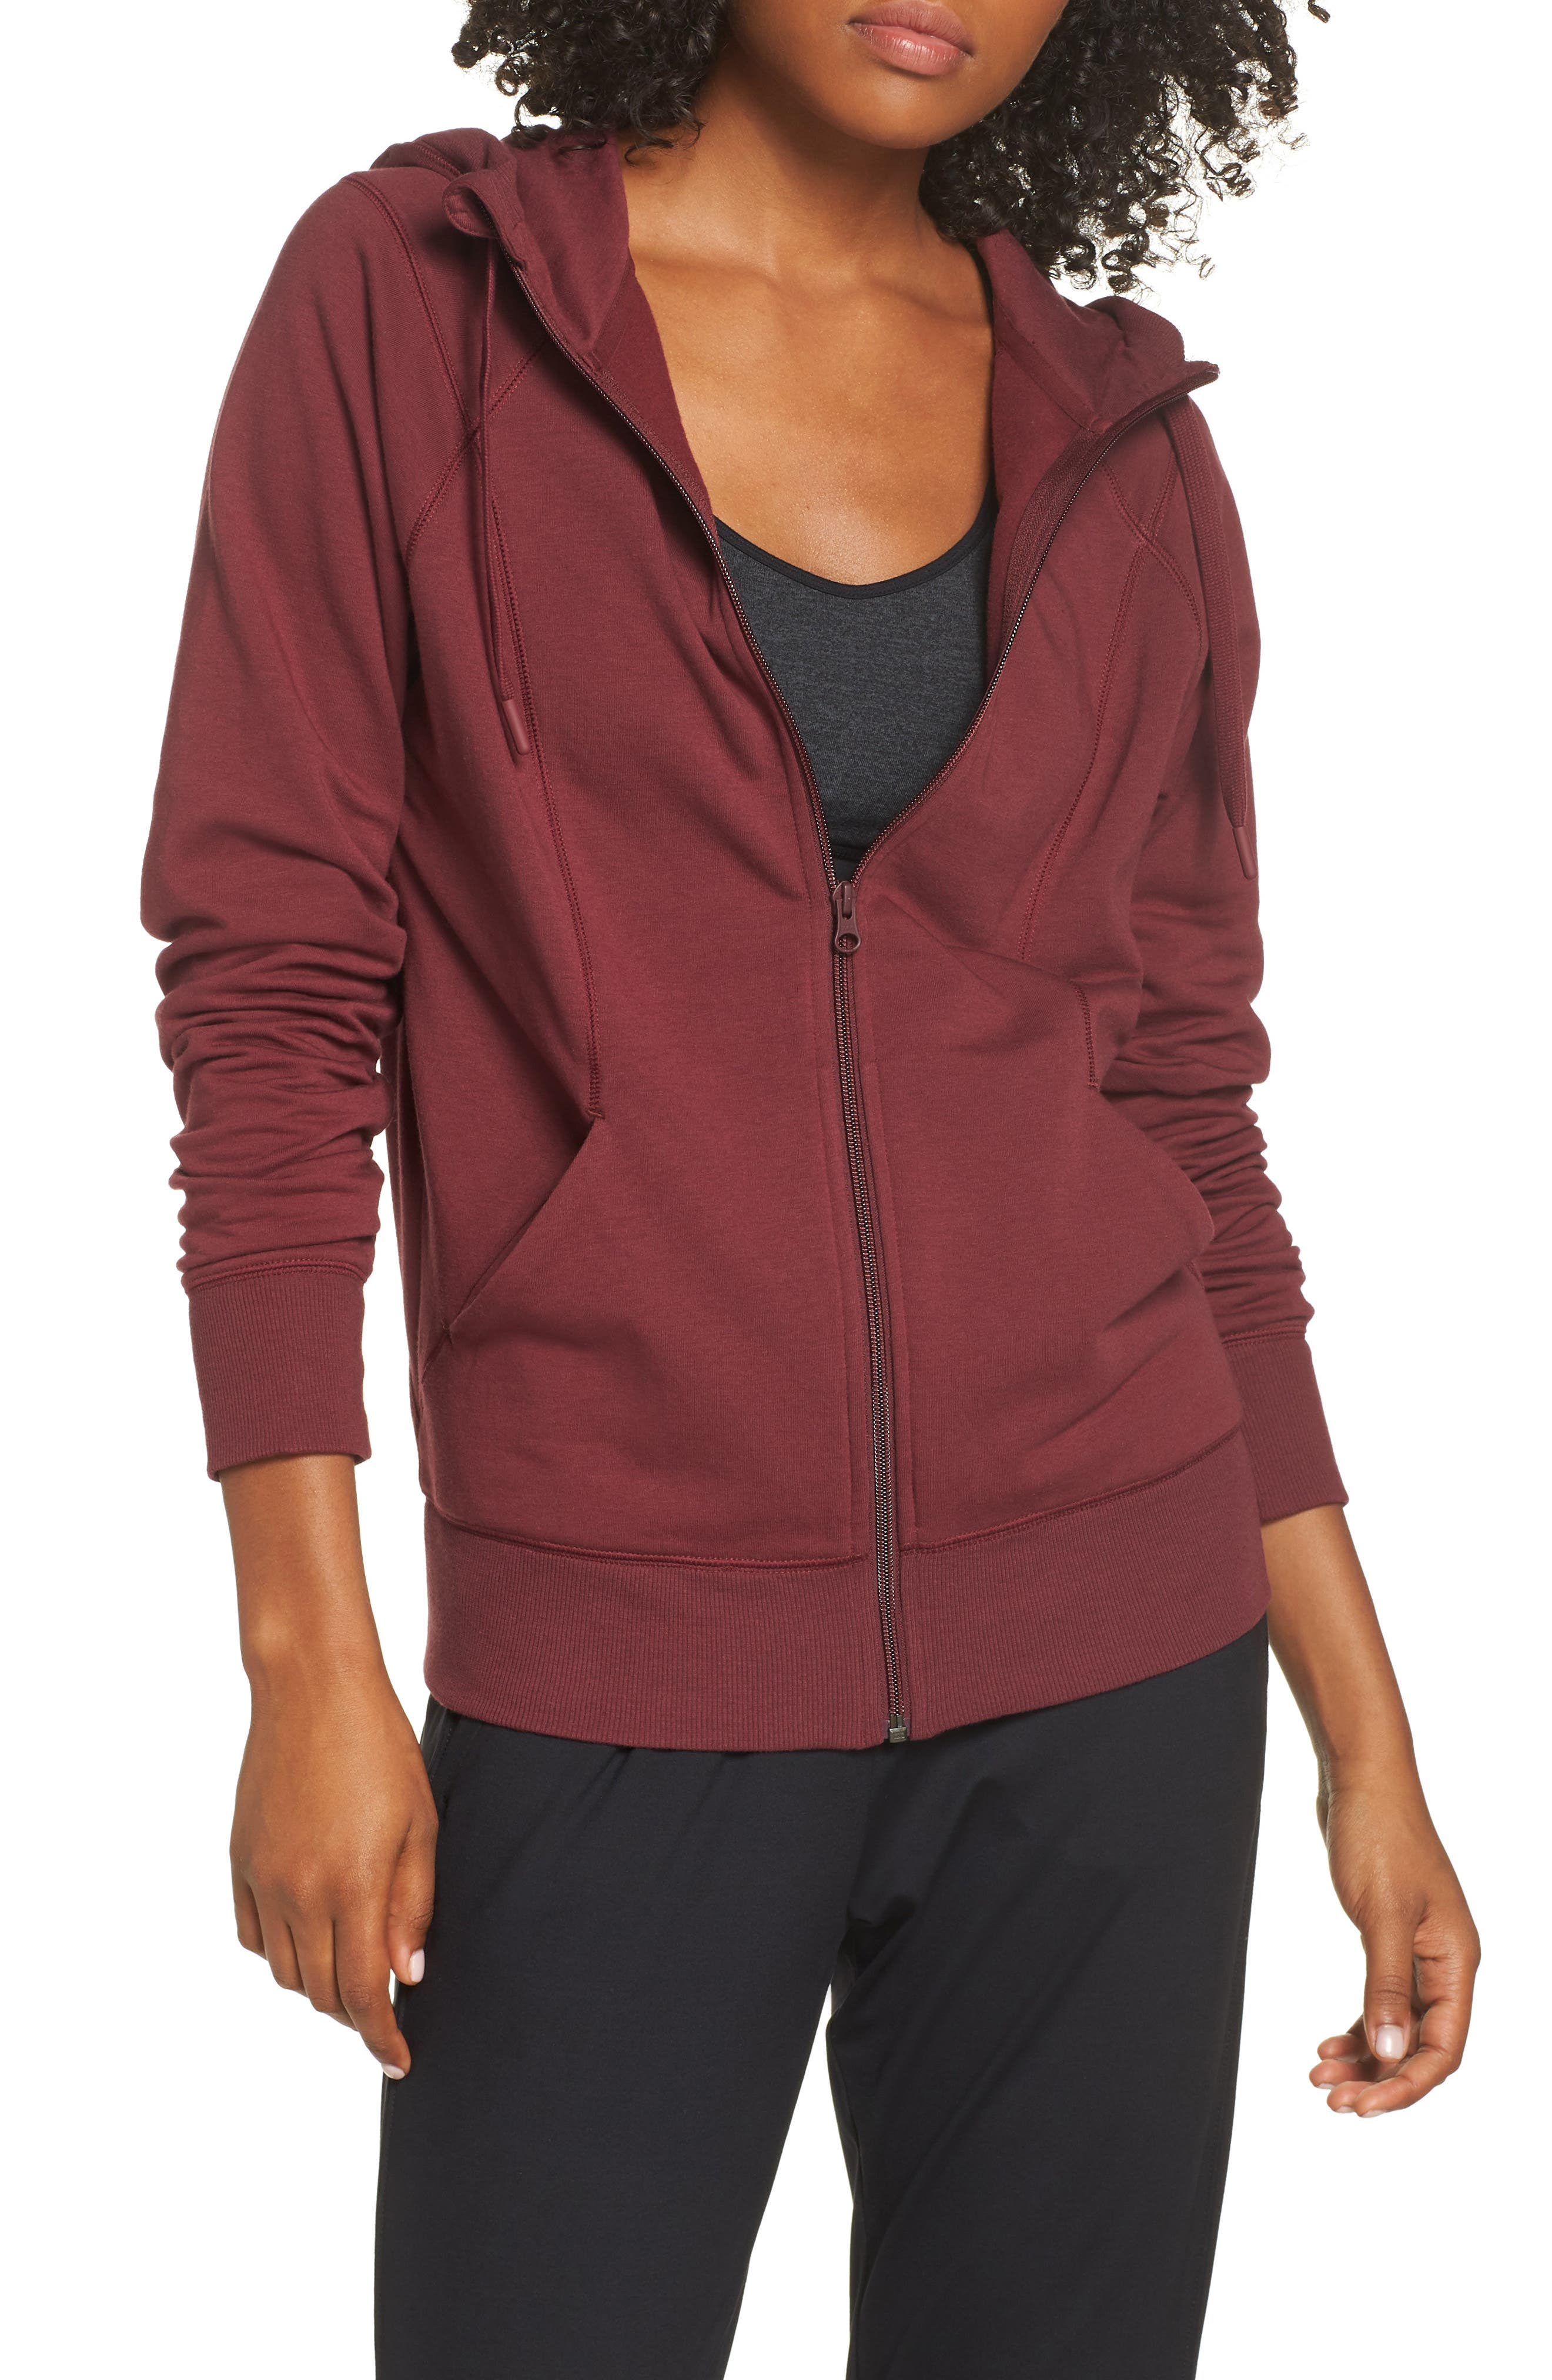 ZELLA, Outta Town Zip Hoodie, Main thumbnail 1, color, 930